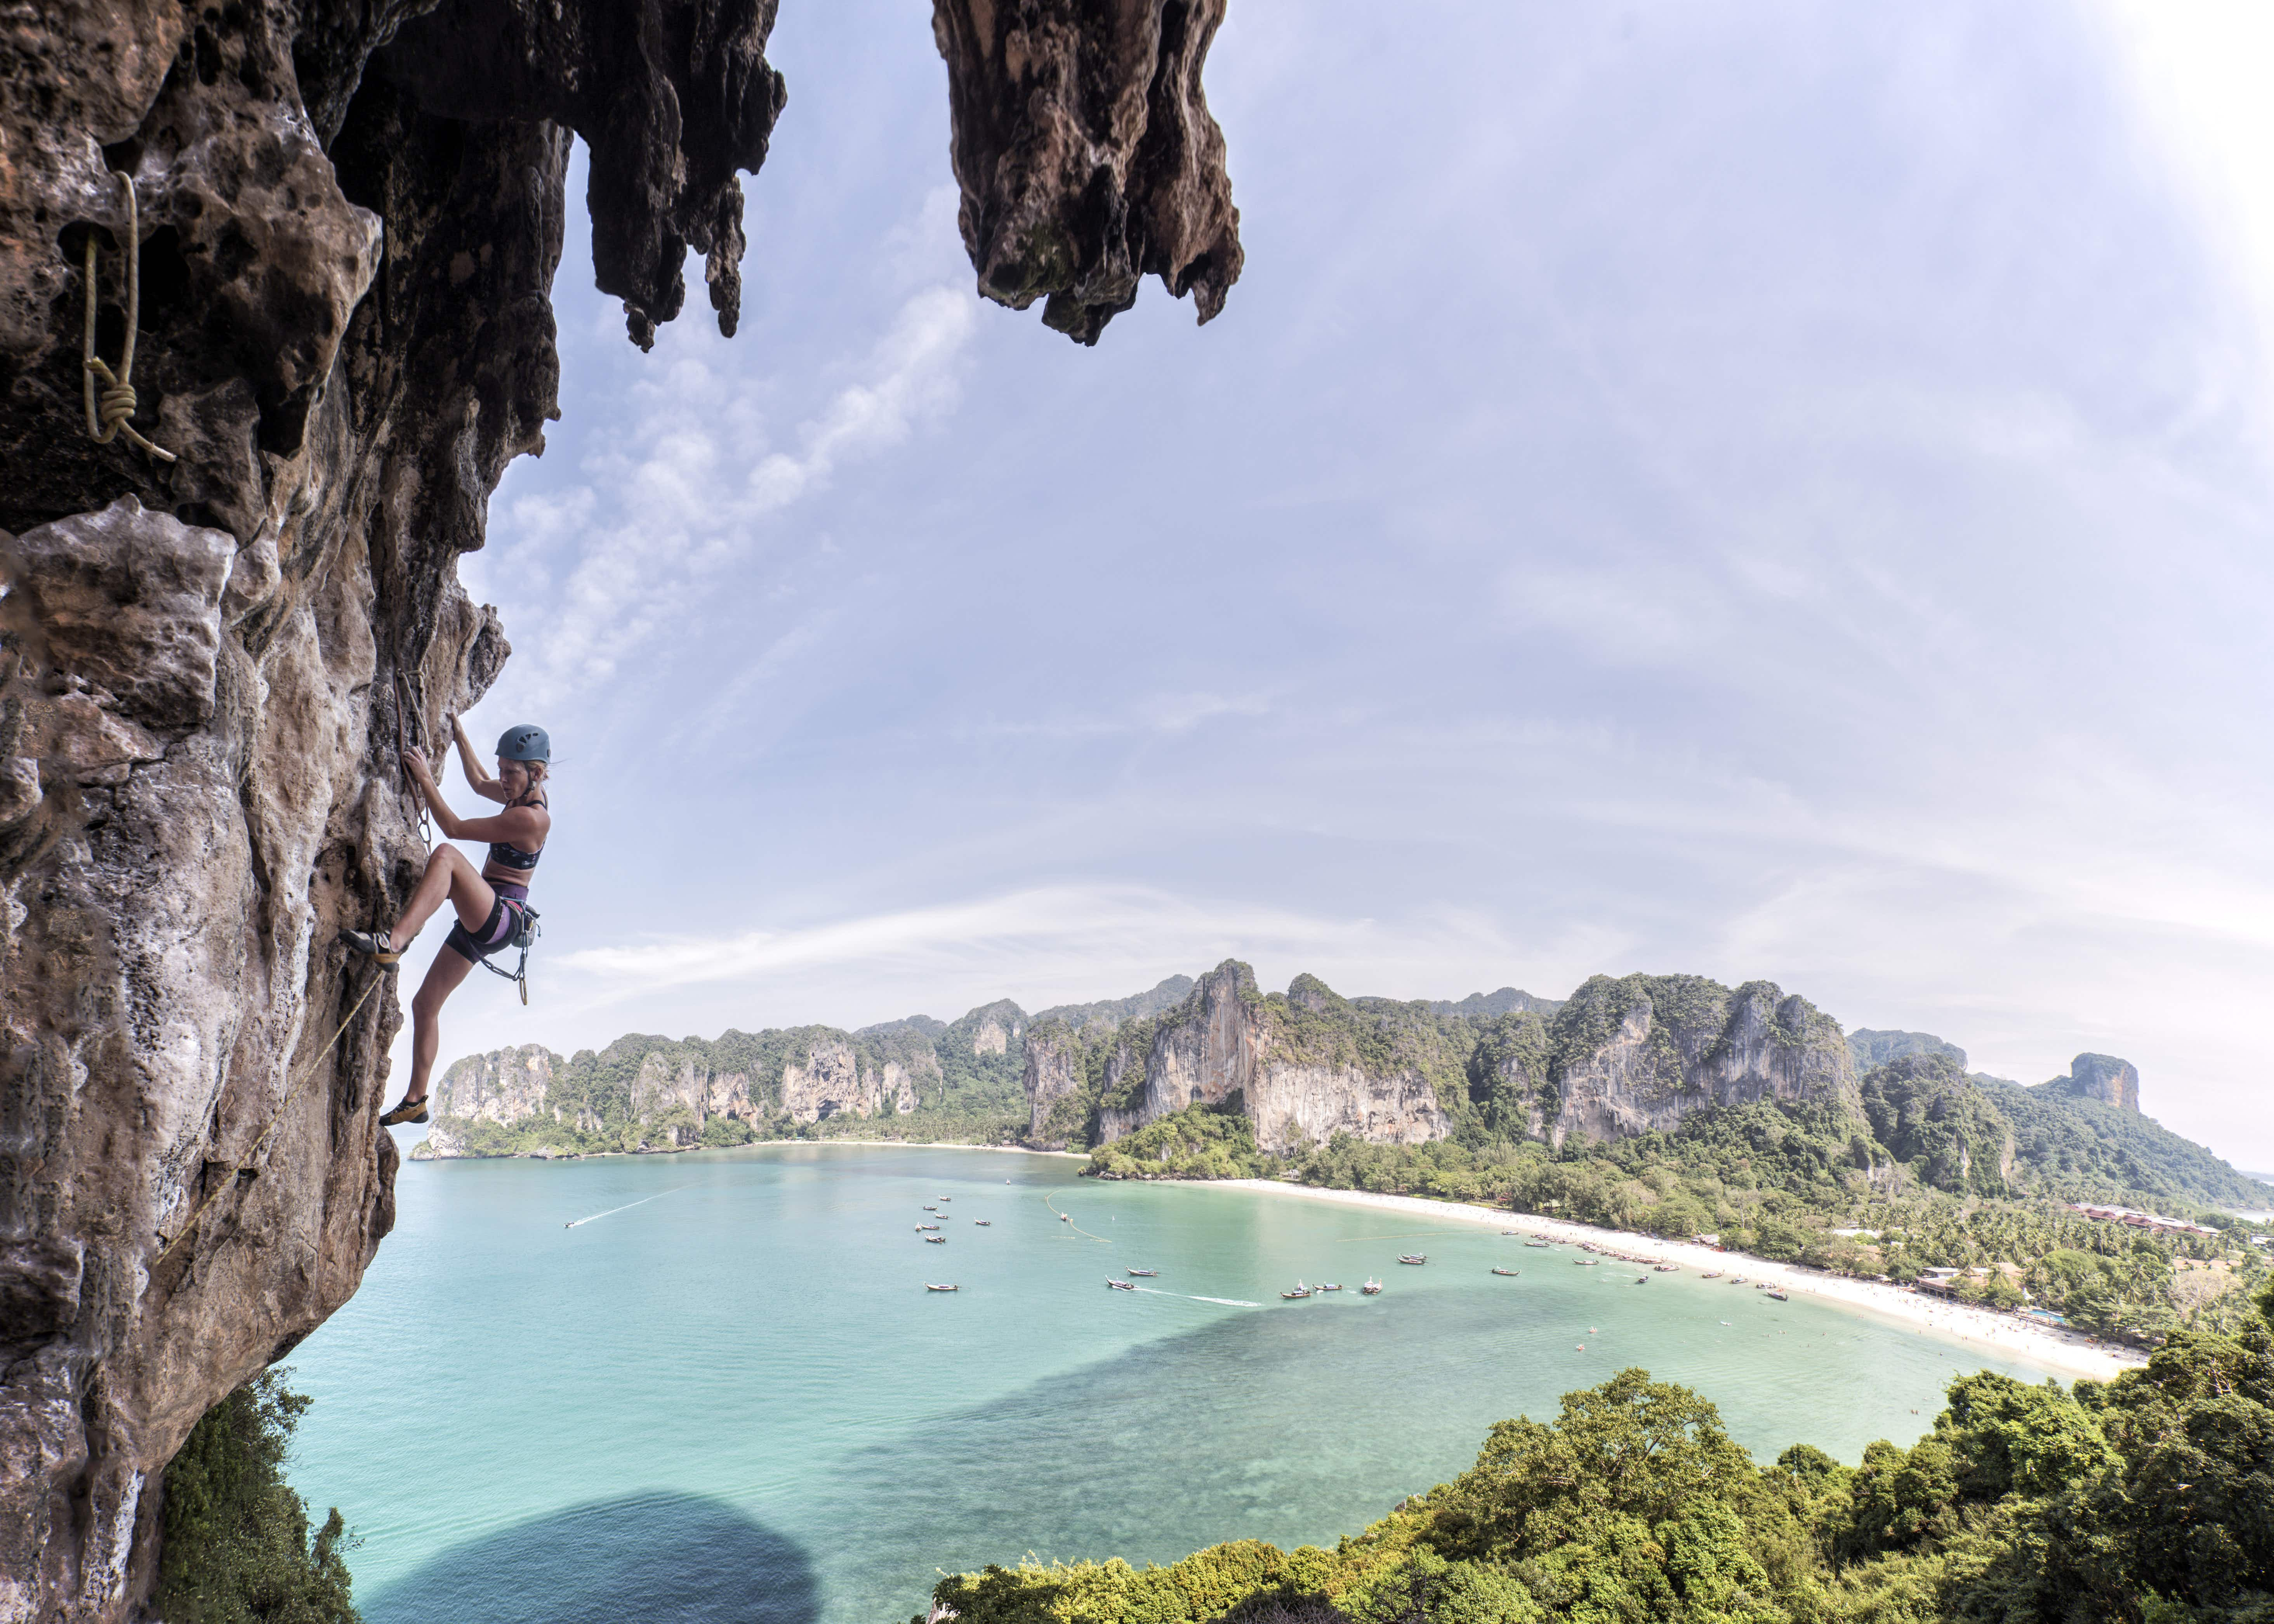 The 7 best rock climbing destinations in Southeast Asia